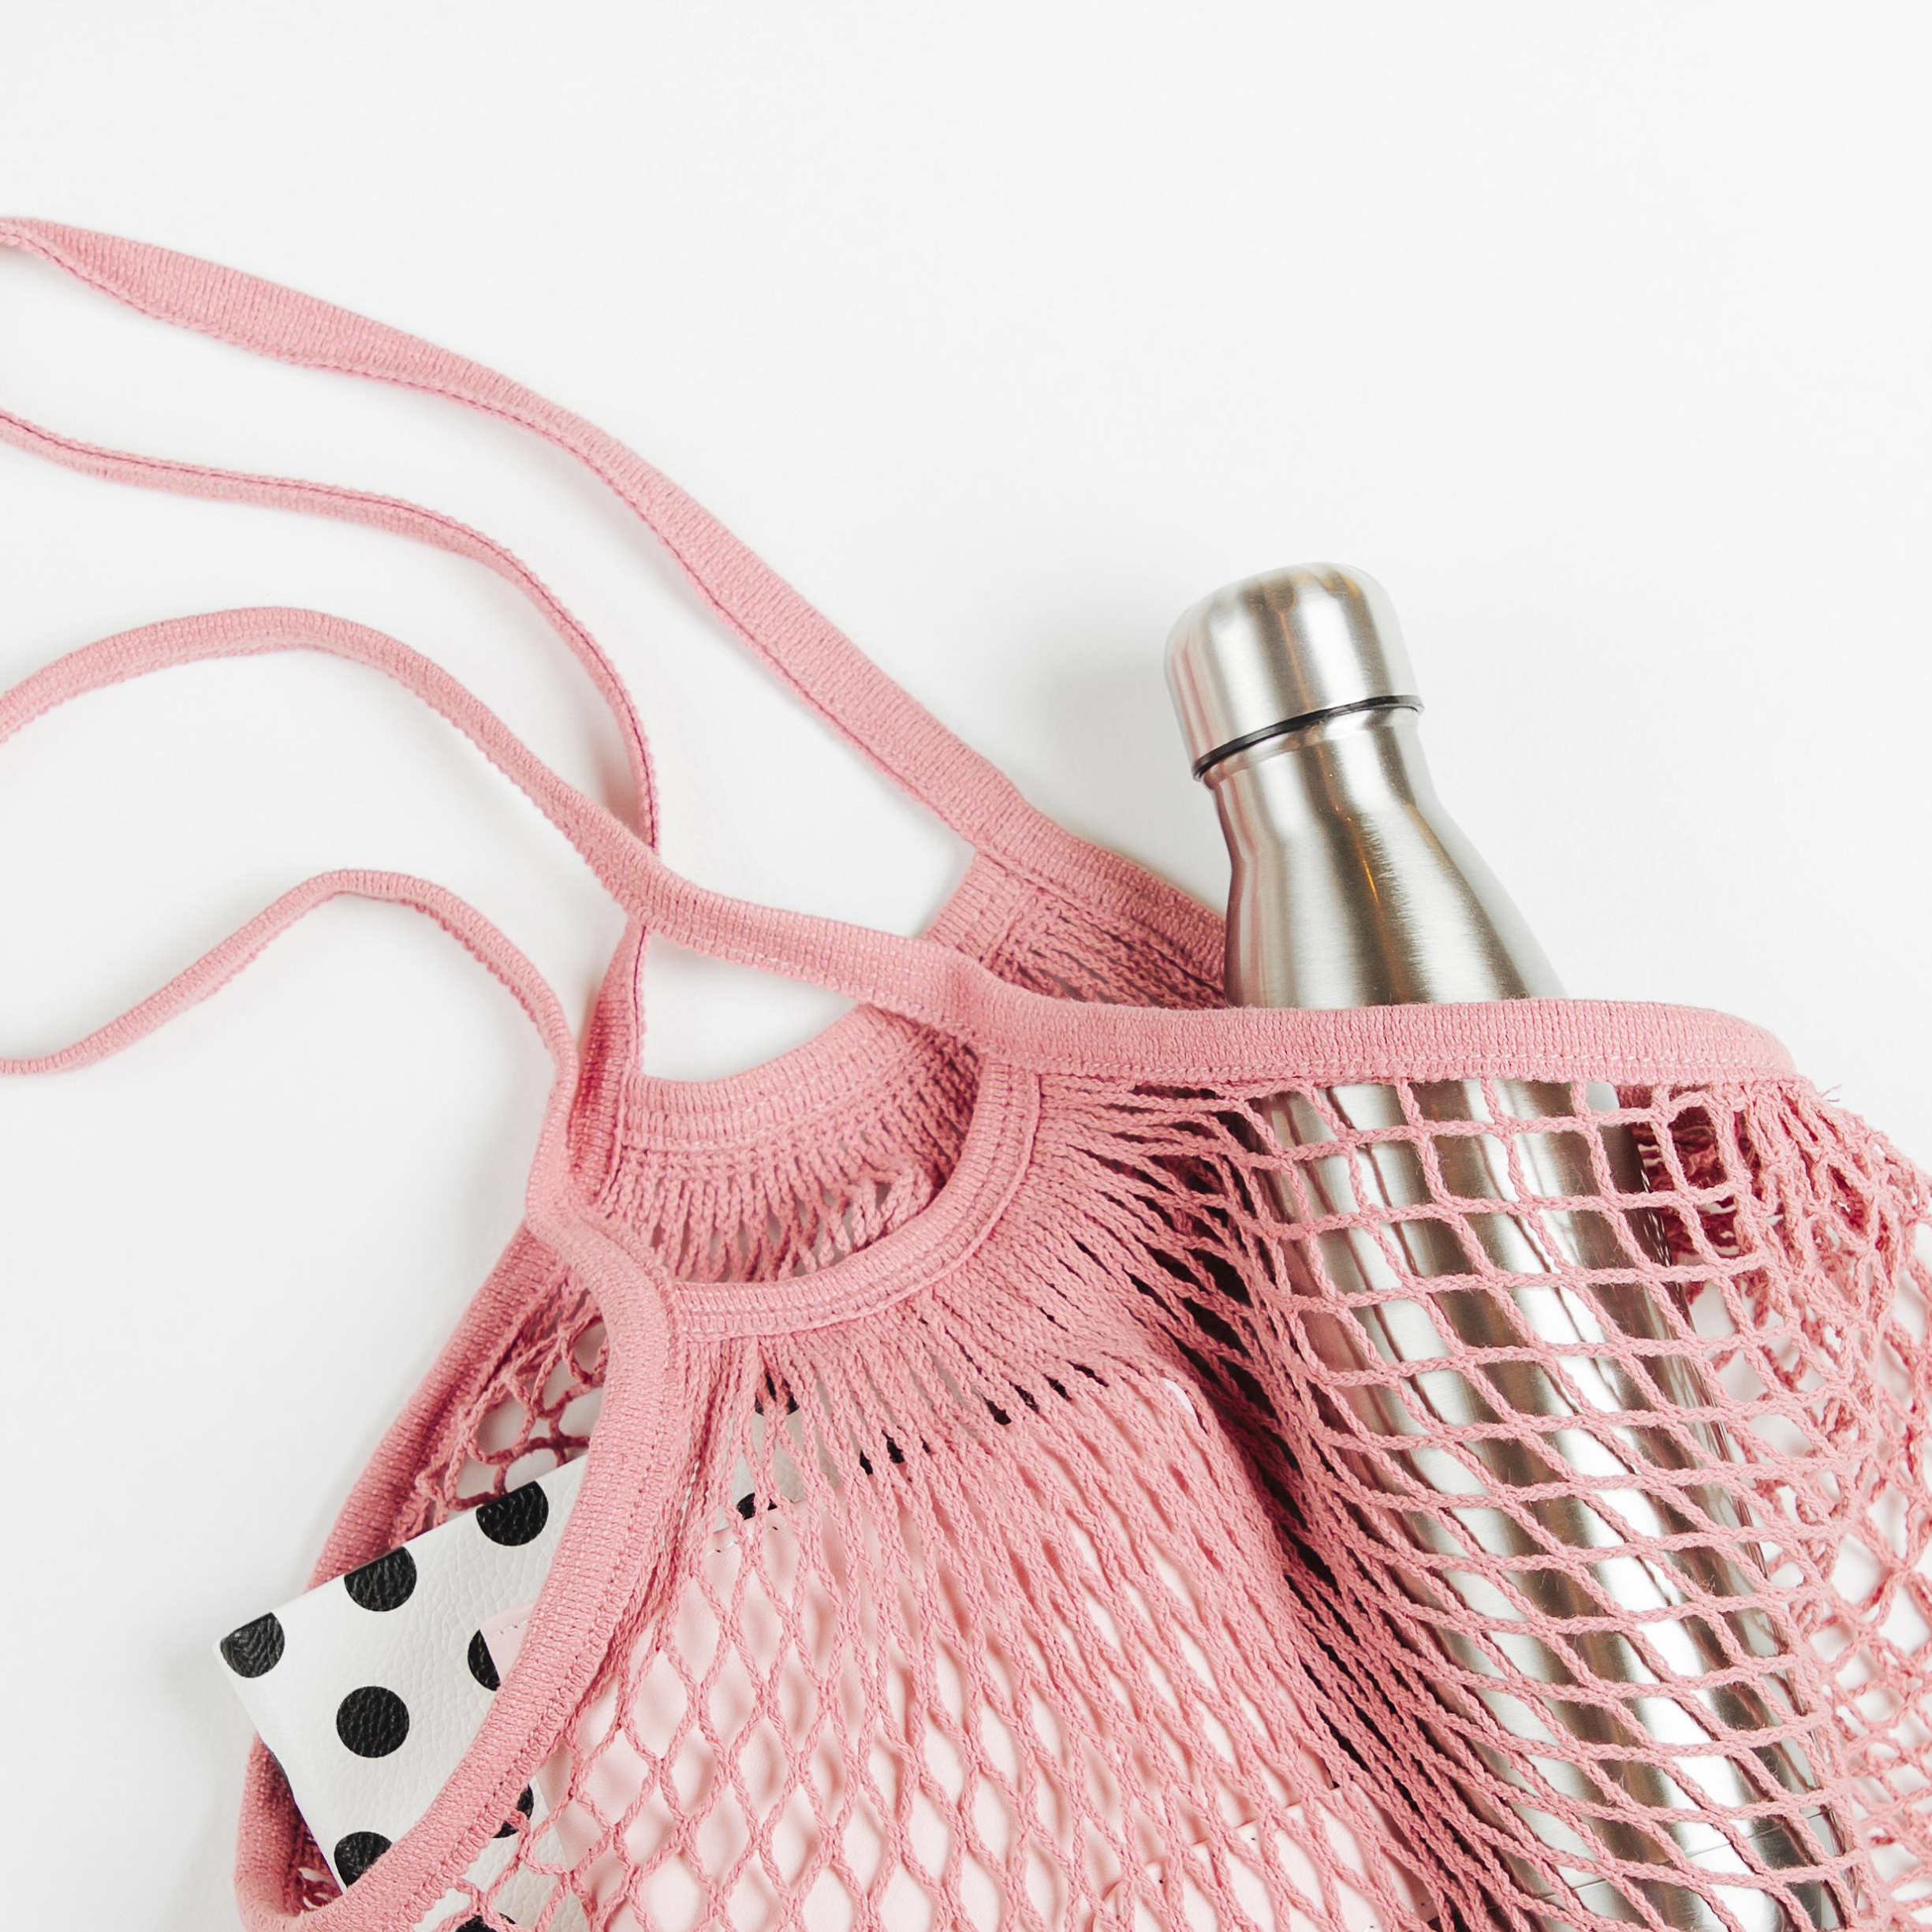 """Stainless steel water bottle in pink mesh tote bag on white background, represents """"Log Your Water Intake"""" program"""